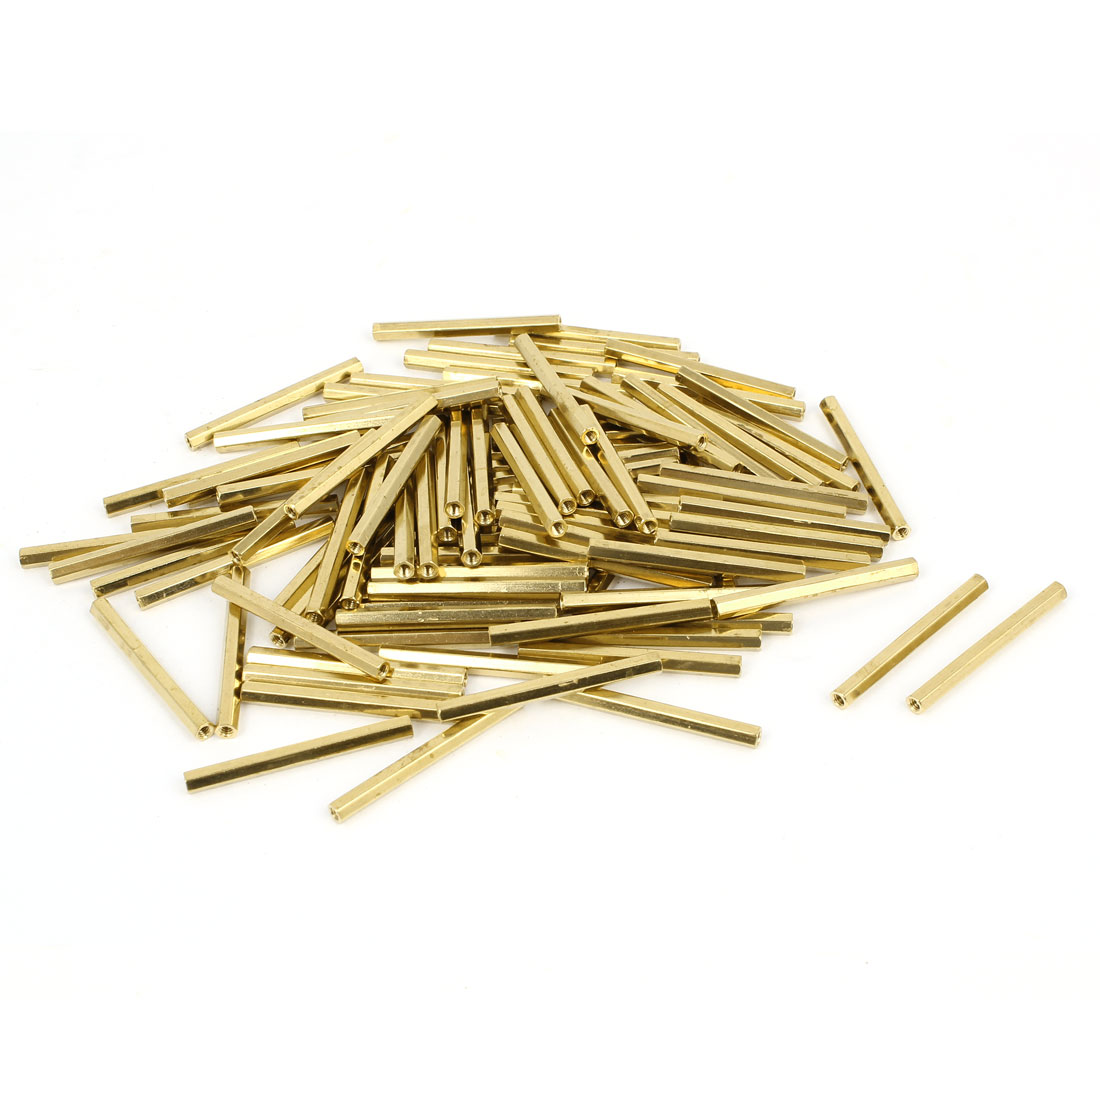 100 Pcs M2 Female Thread Brass Pillar Standoff Hexagonal Spacer 32mm Length